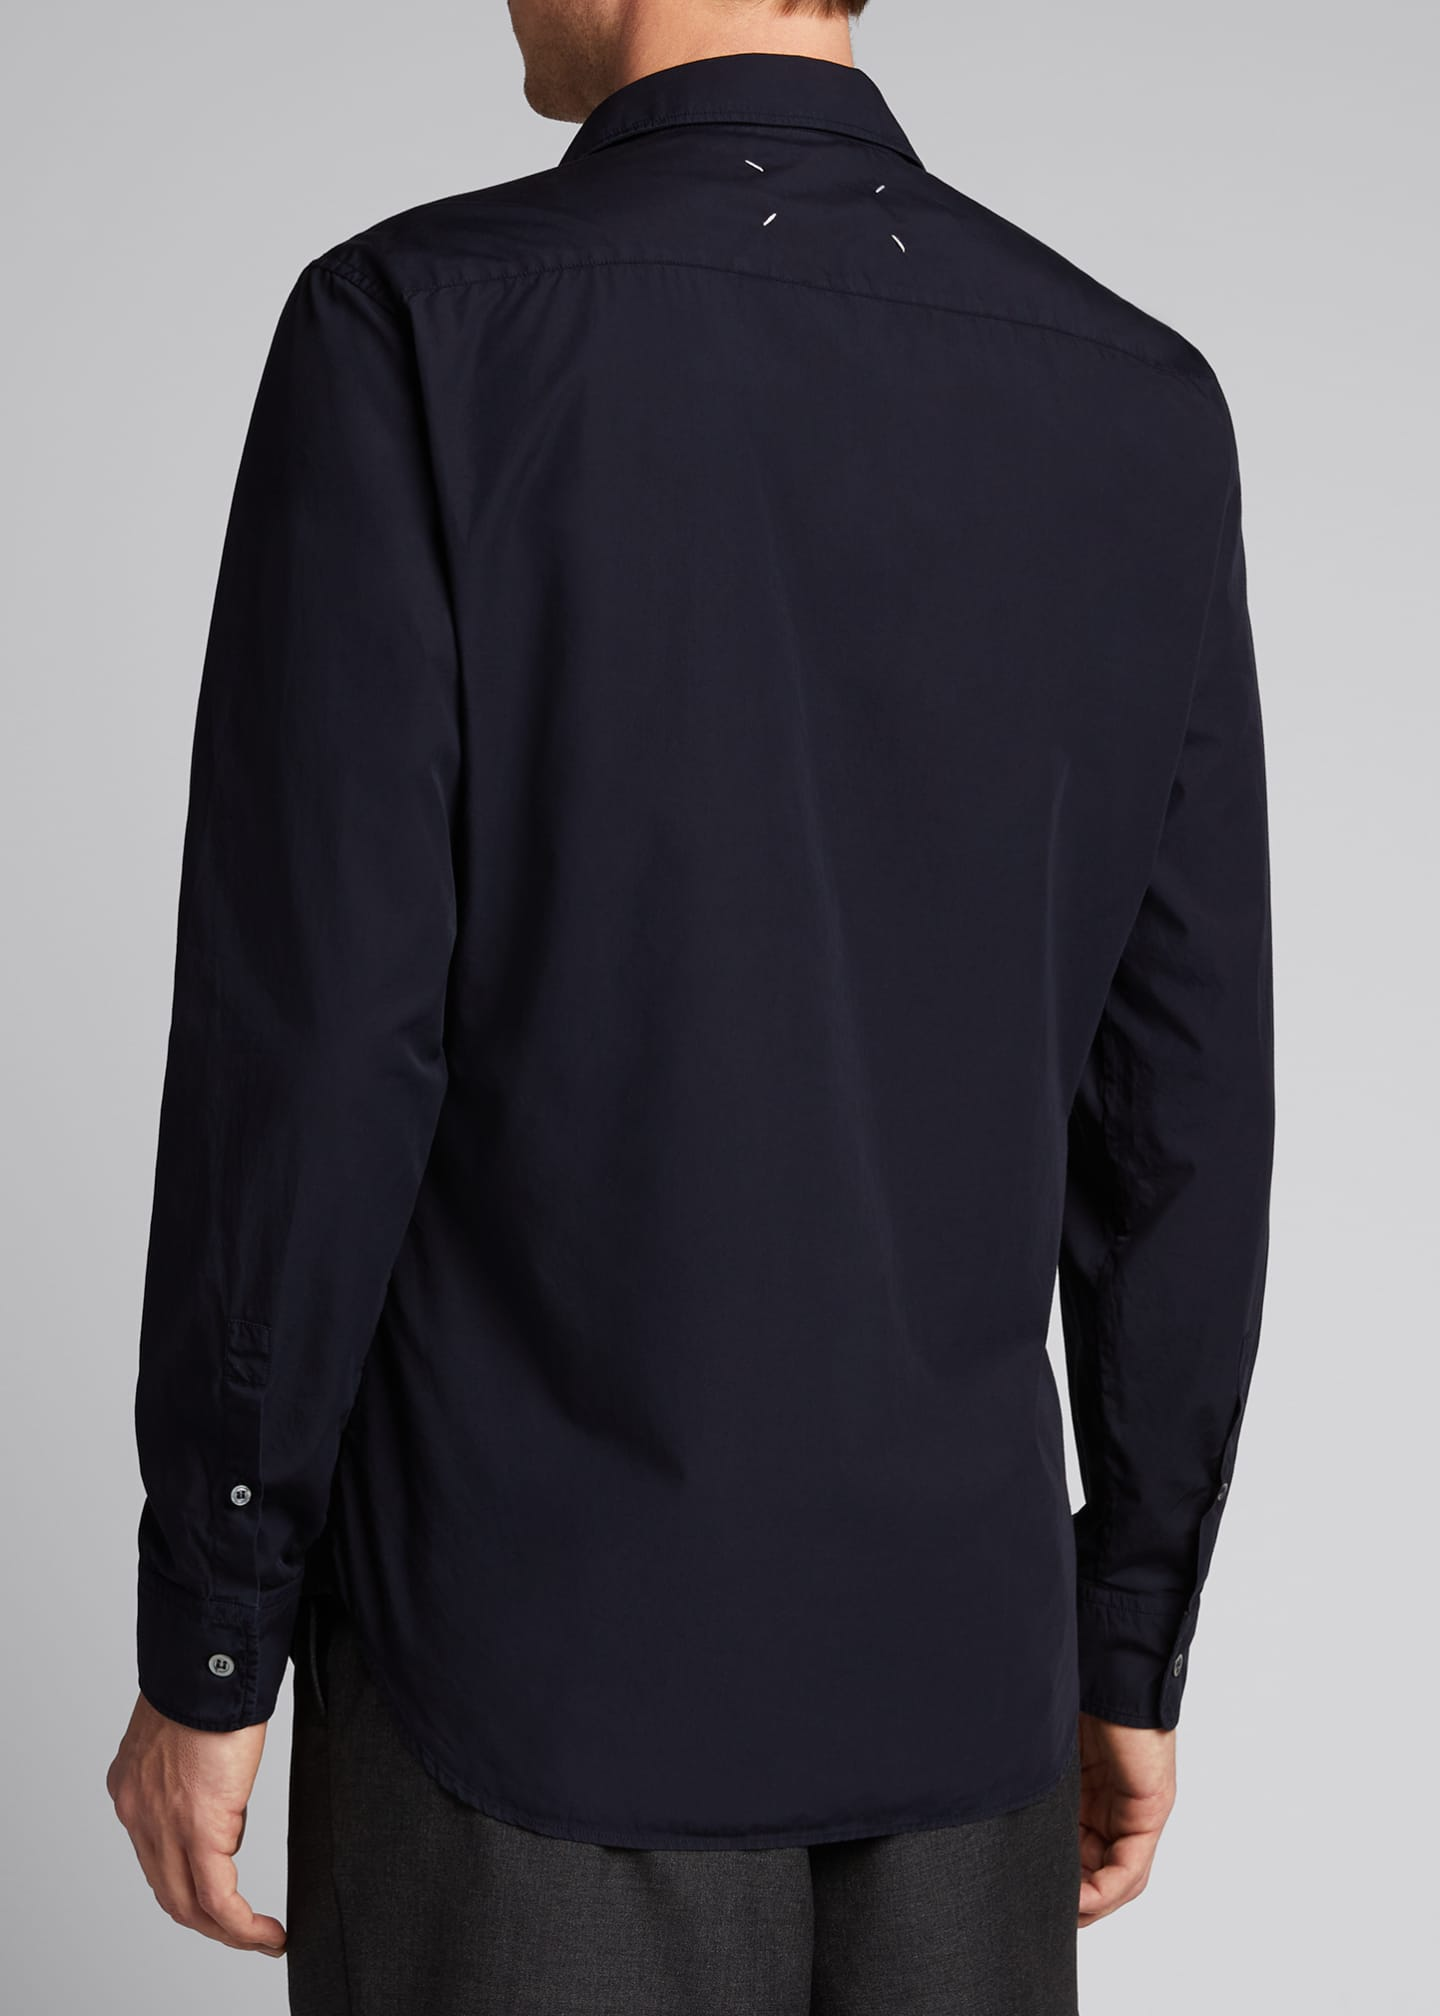 Image 2 of 5: Men's Garment-Dyed Sport Shirt w/ Pocket Stitching